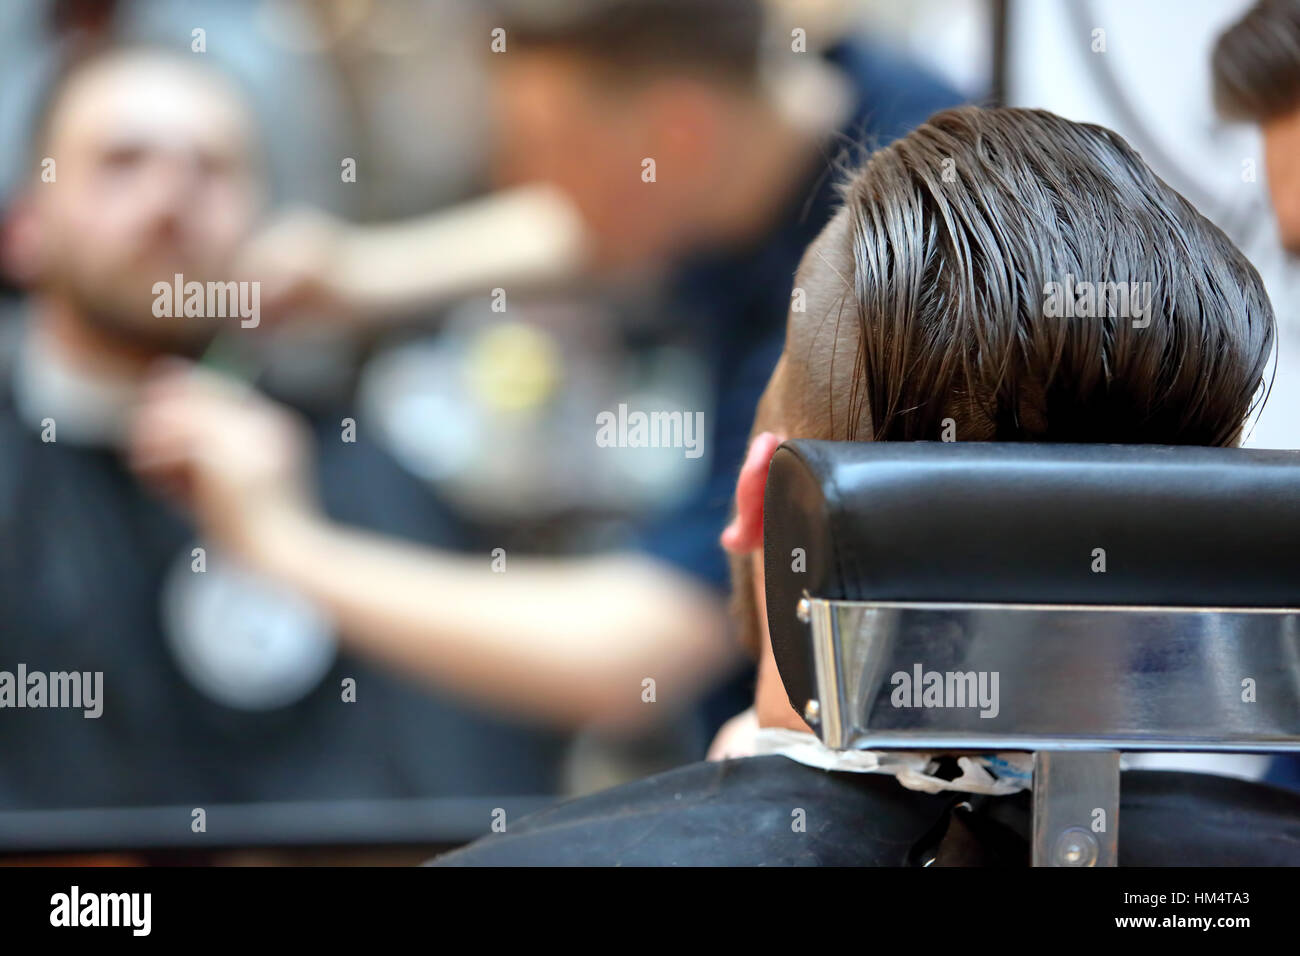 The client at the barber shop haircut beard - Stock Image